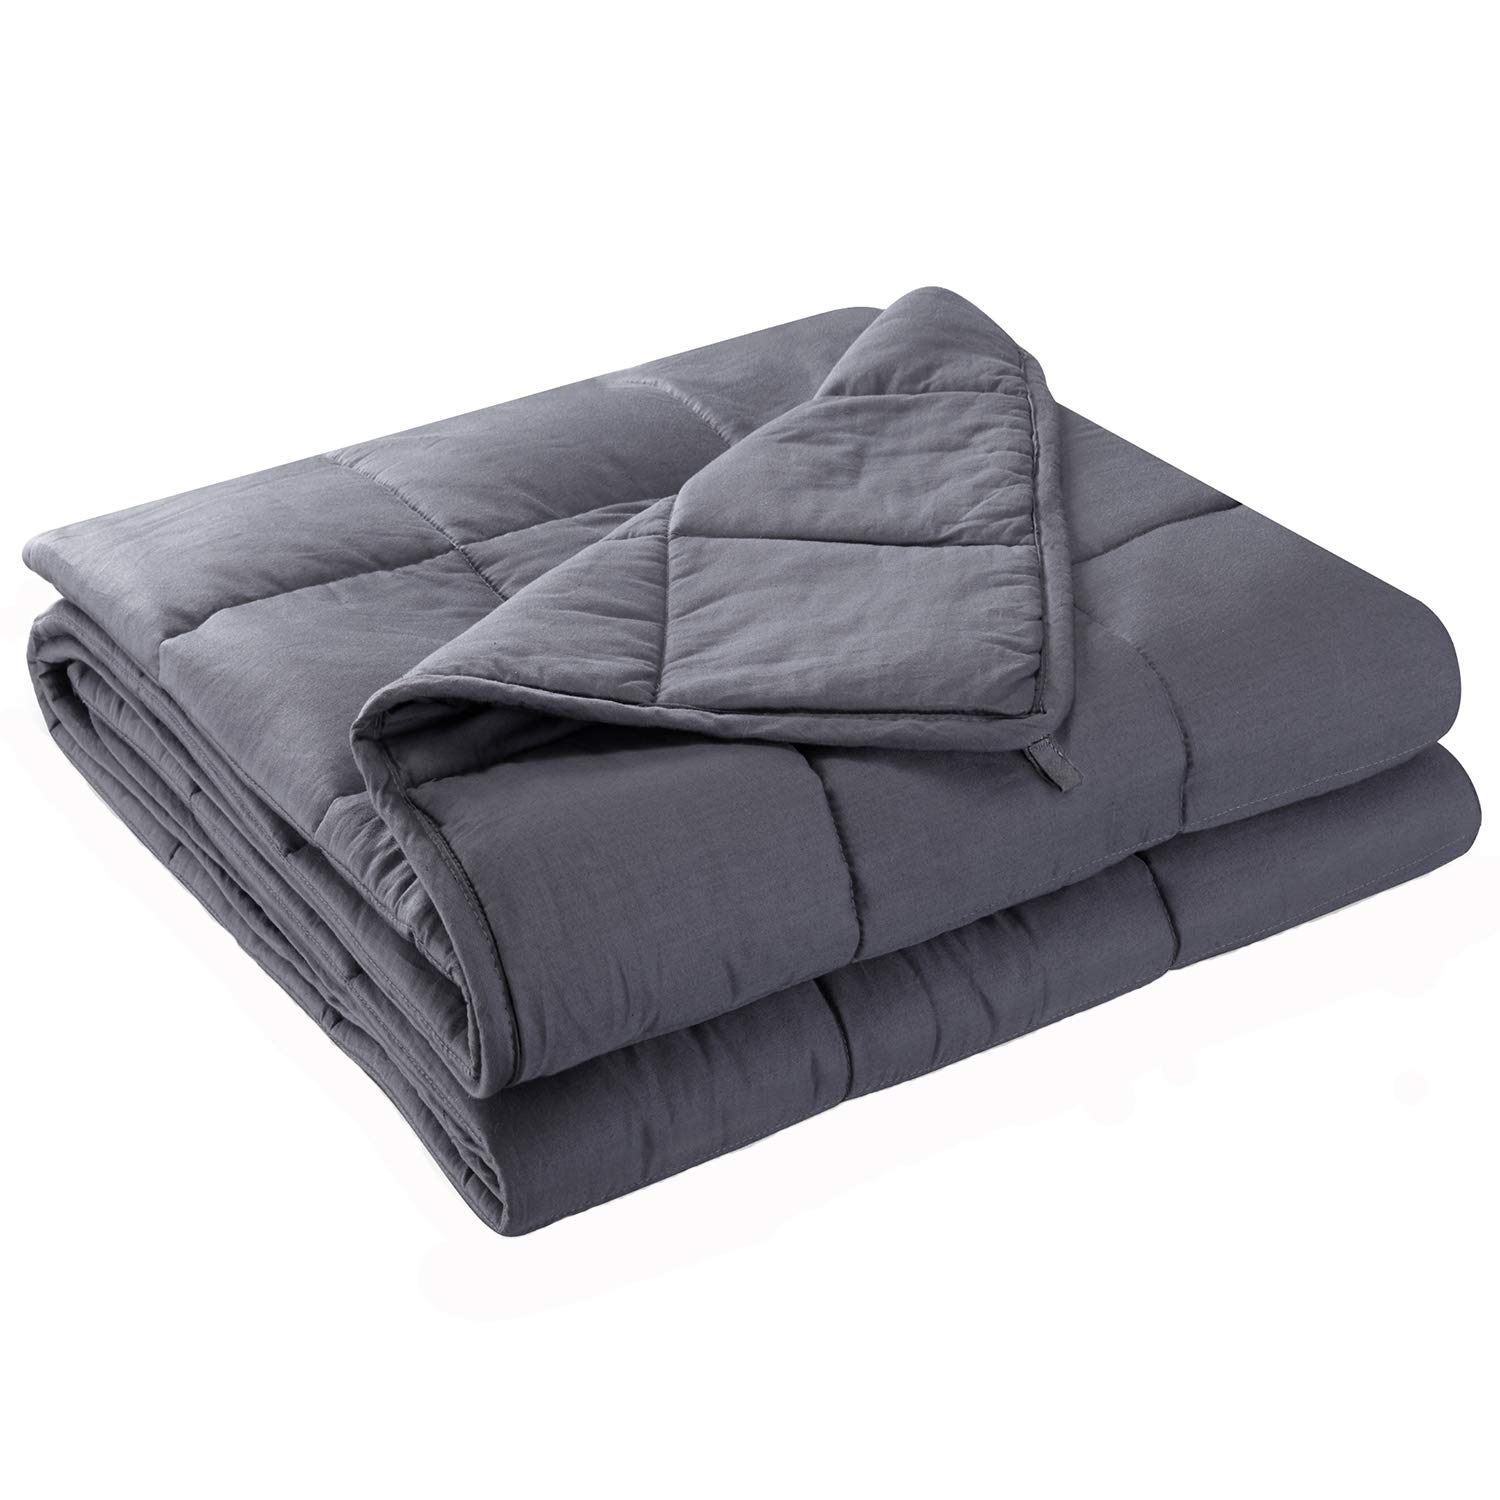 Anjee Weighted Cooling Blanket for Adults | Heavy Blanket | 100% Eco-Friendly Cotton Material with Silica Beads for Better Sleep (60 x 80 Inches, 15 lbs for 100-150 lbs Individual, Grey) by Anjee